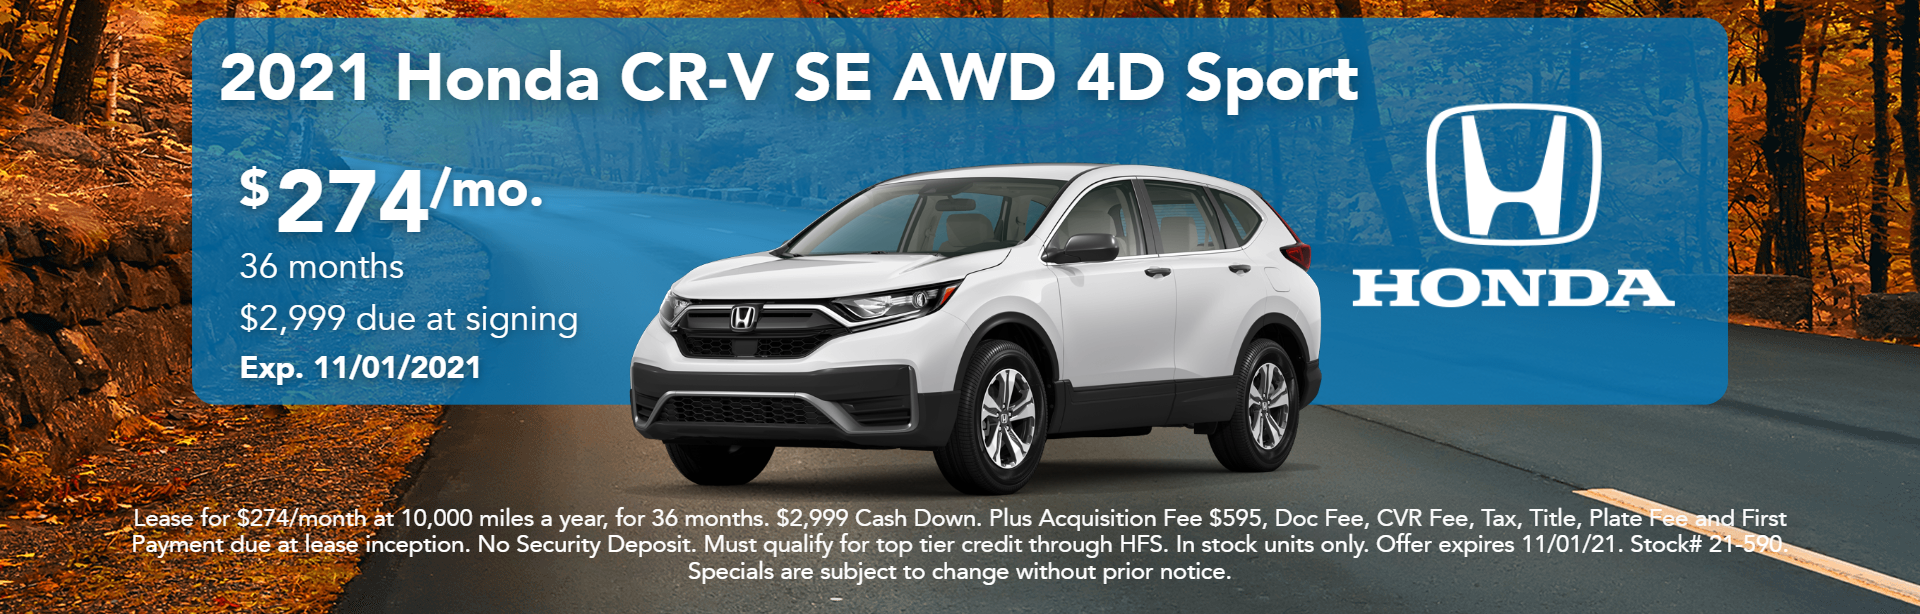 2021_Honda_CR-V_Special Edition AWD_Tue Oct 05 2021 13_14_58 GMT-0400 (Eastern Daylight Time)